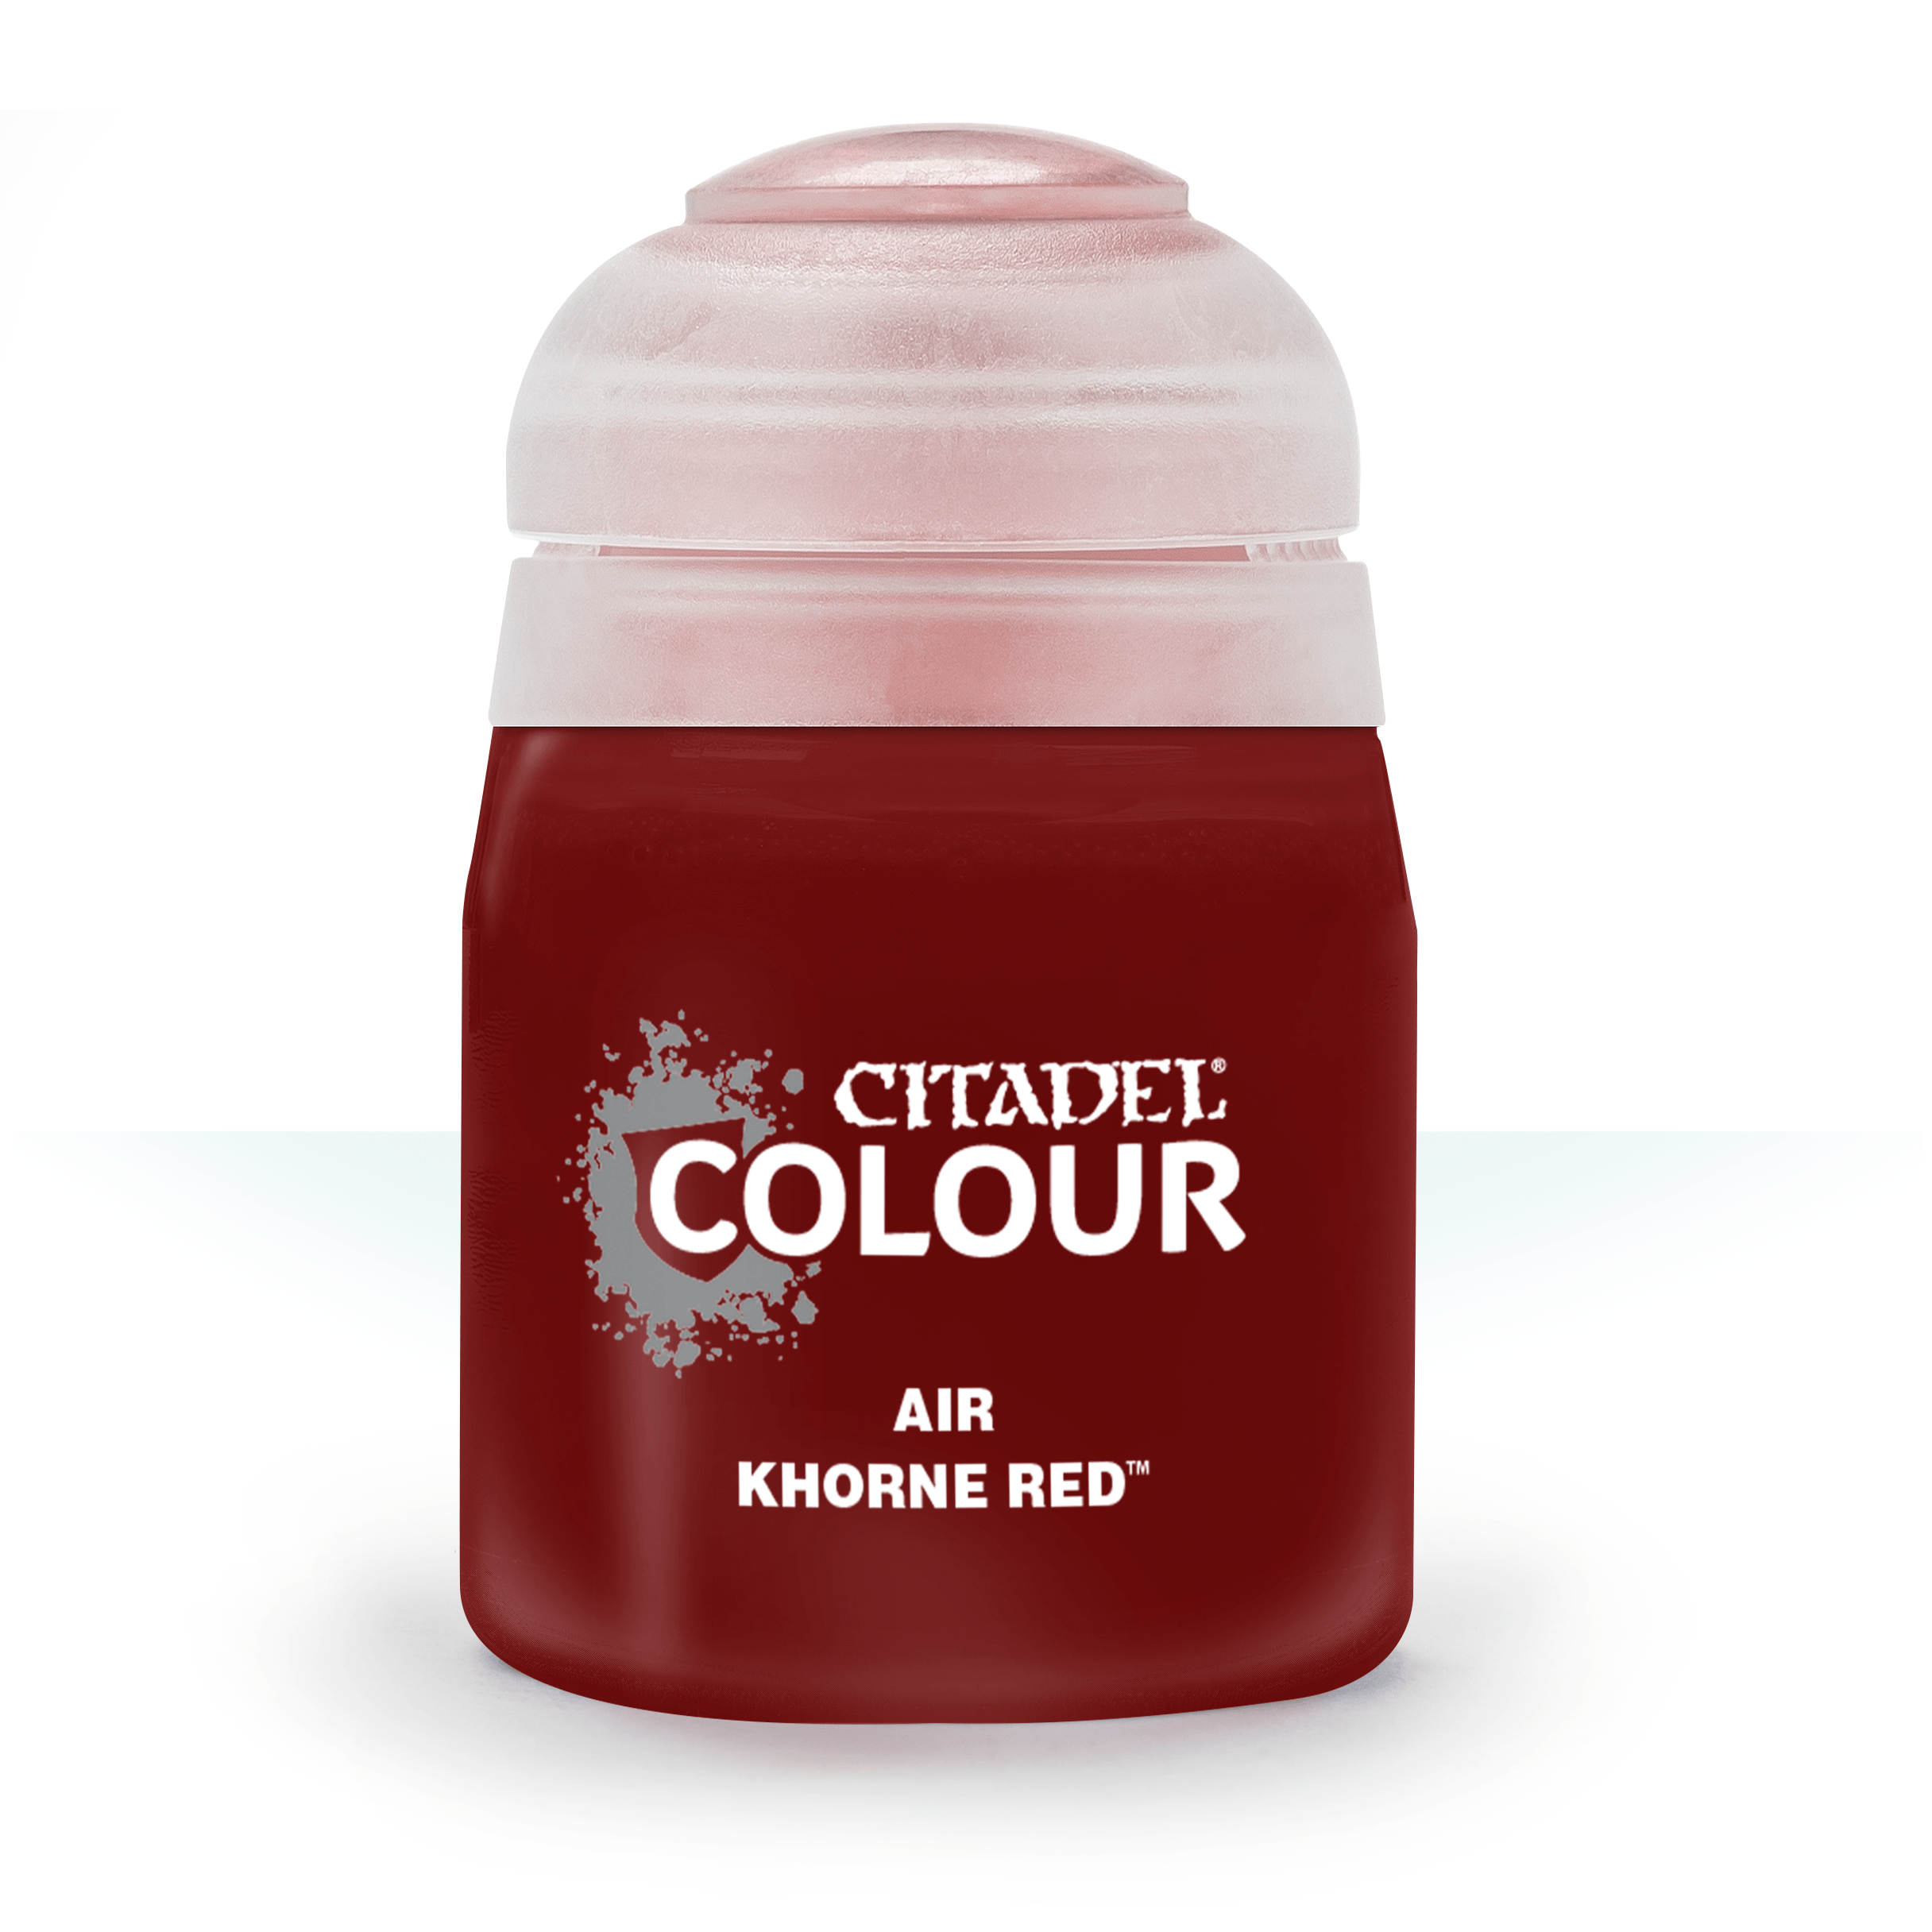 Citadel Airbrush Paints: Khorne Red Air (24ML)